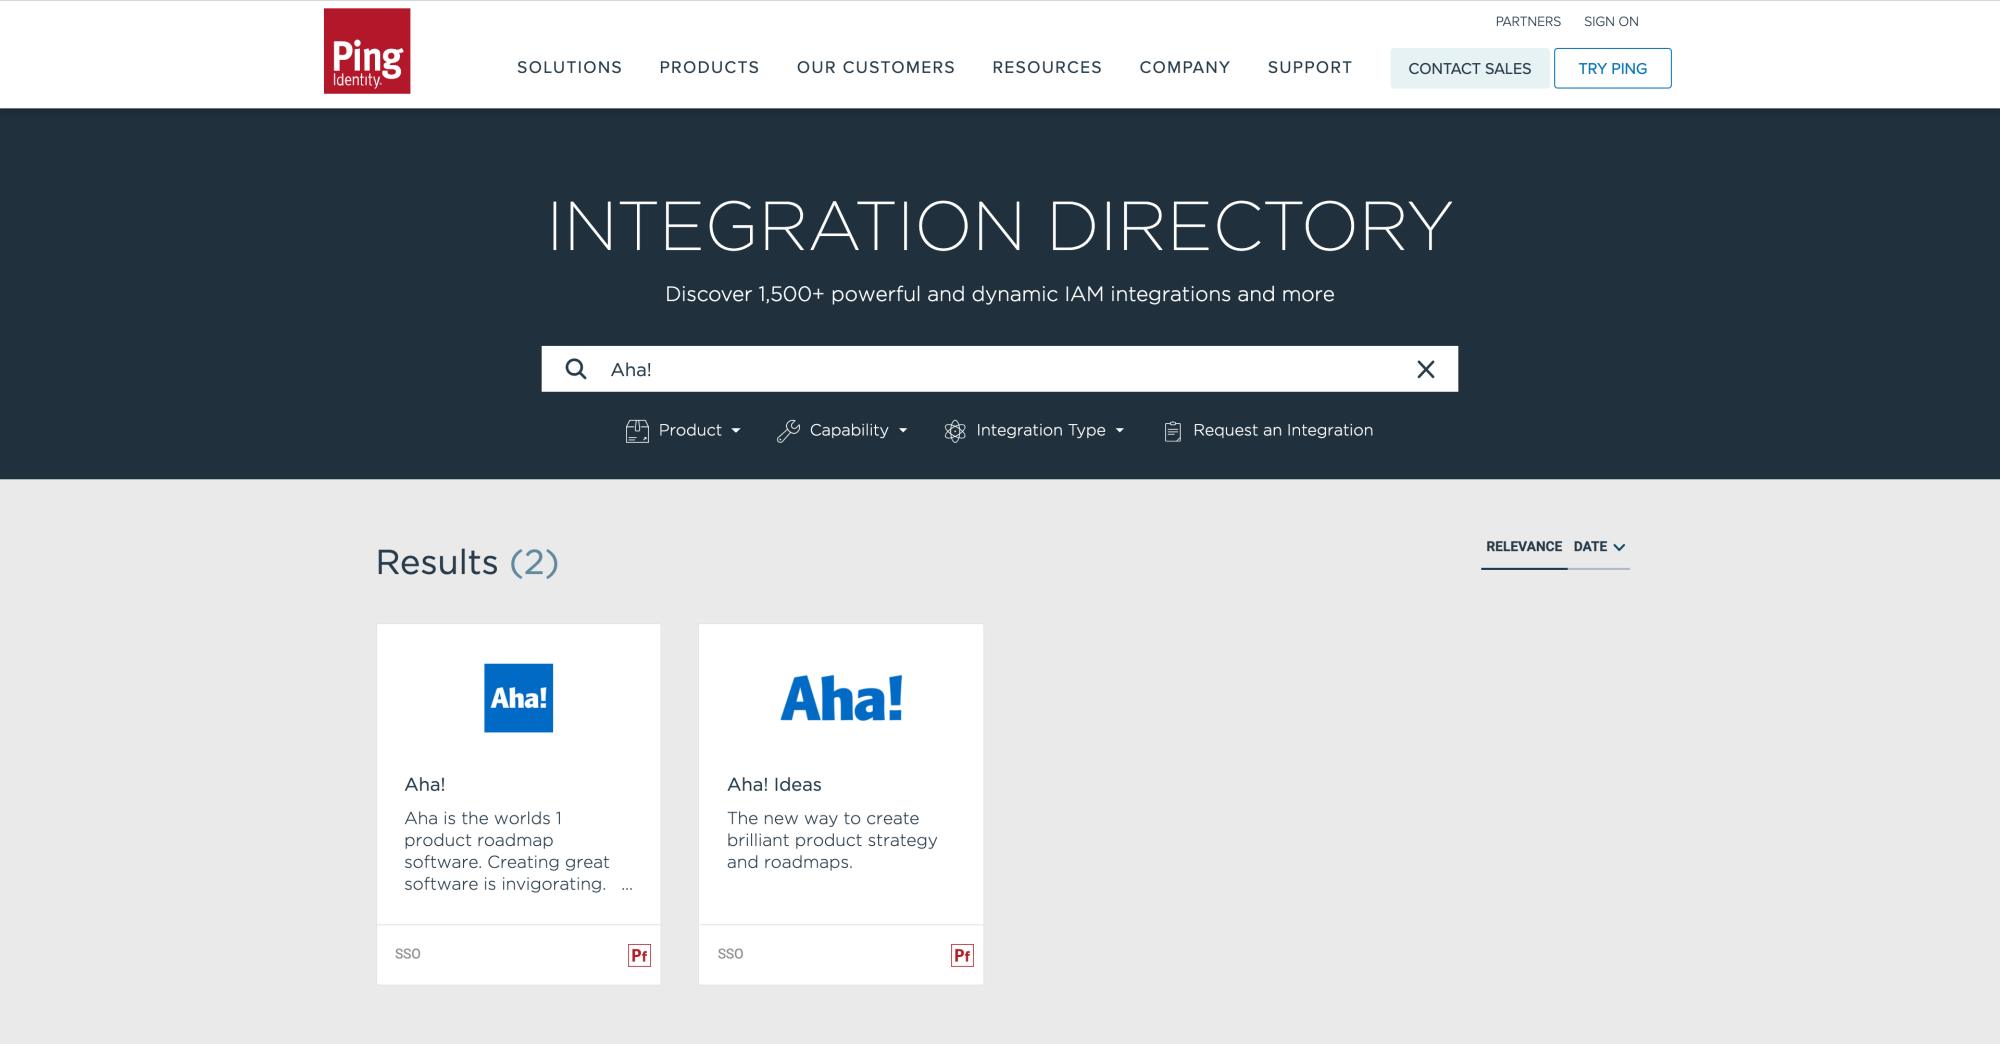 Find the Aha! integrations in the Ping Identity Integration Directory and configure the integration.